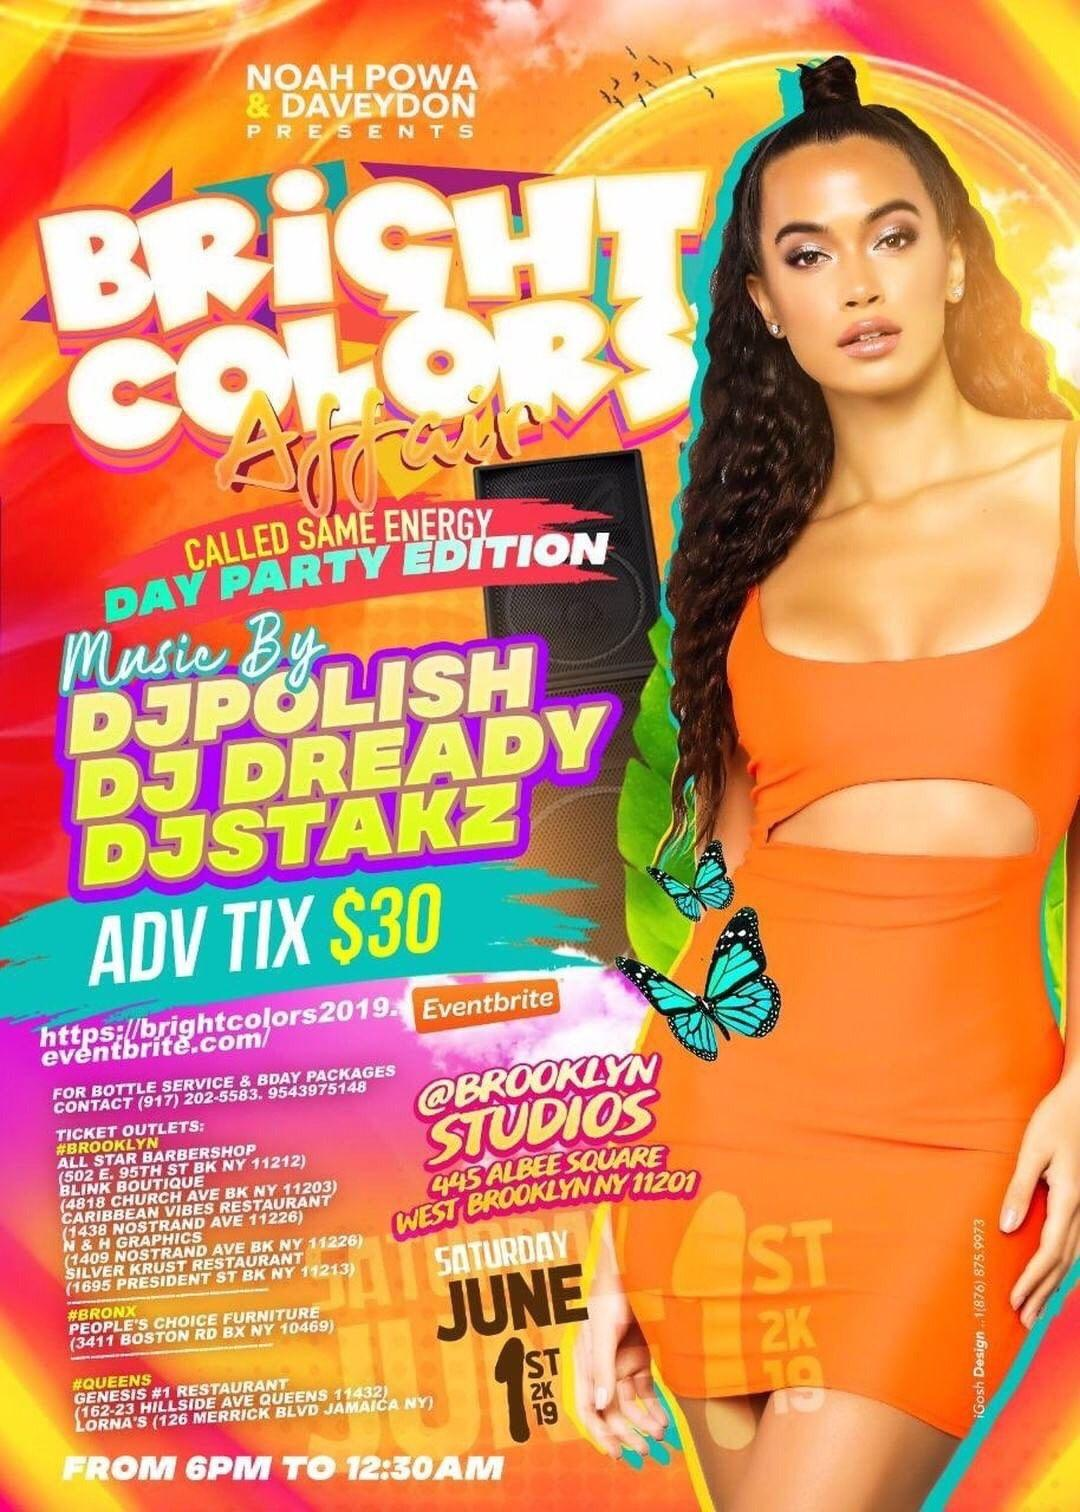 Bright Colors Affair - Day Party Edition - June 1.jpg